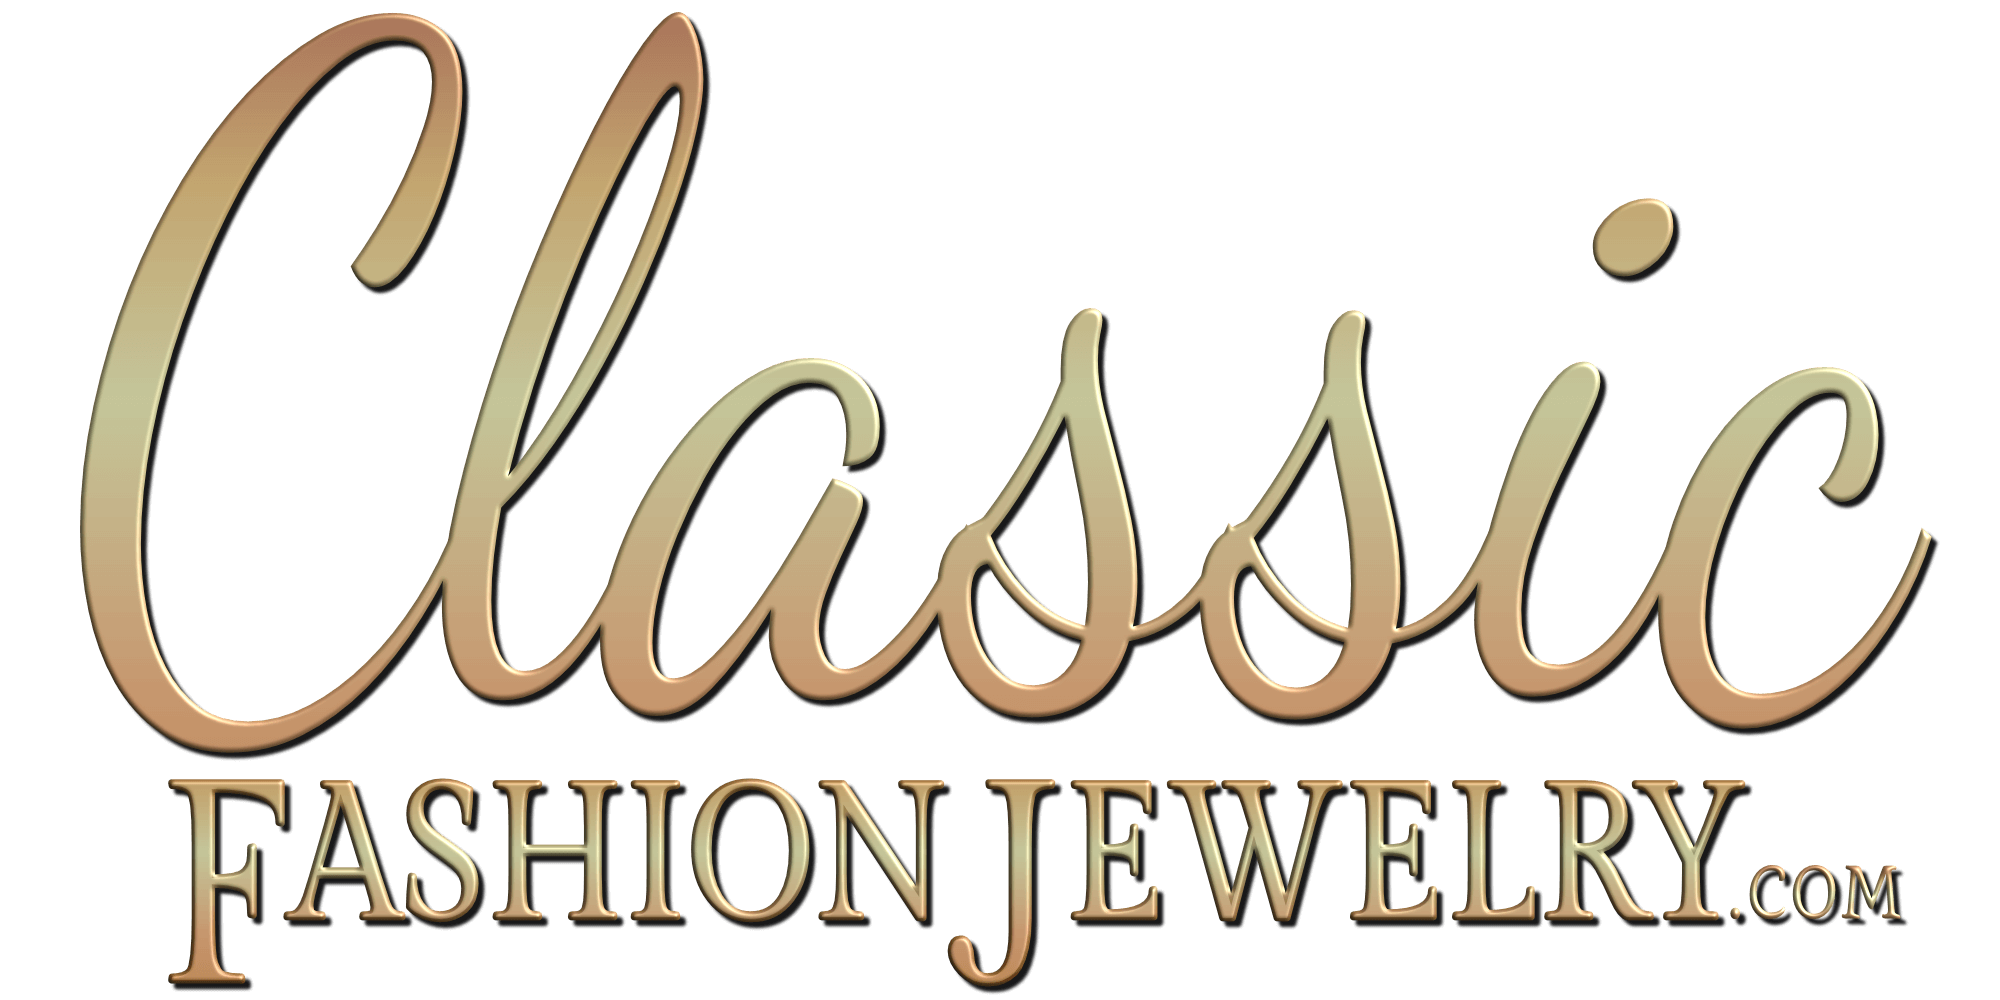 Classic-Fashion-Jewelry-com-Logo-2000x1000-